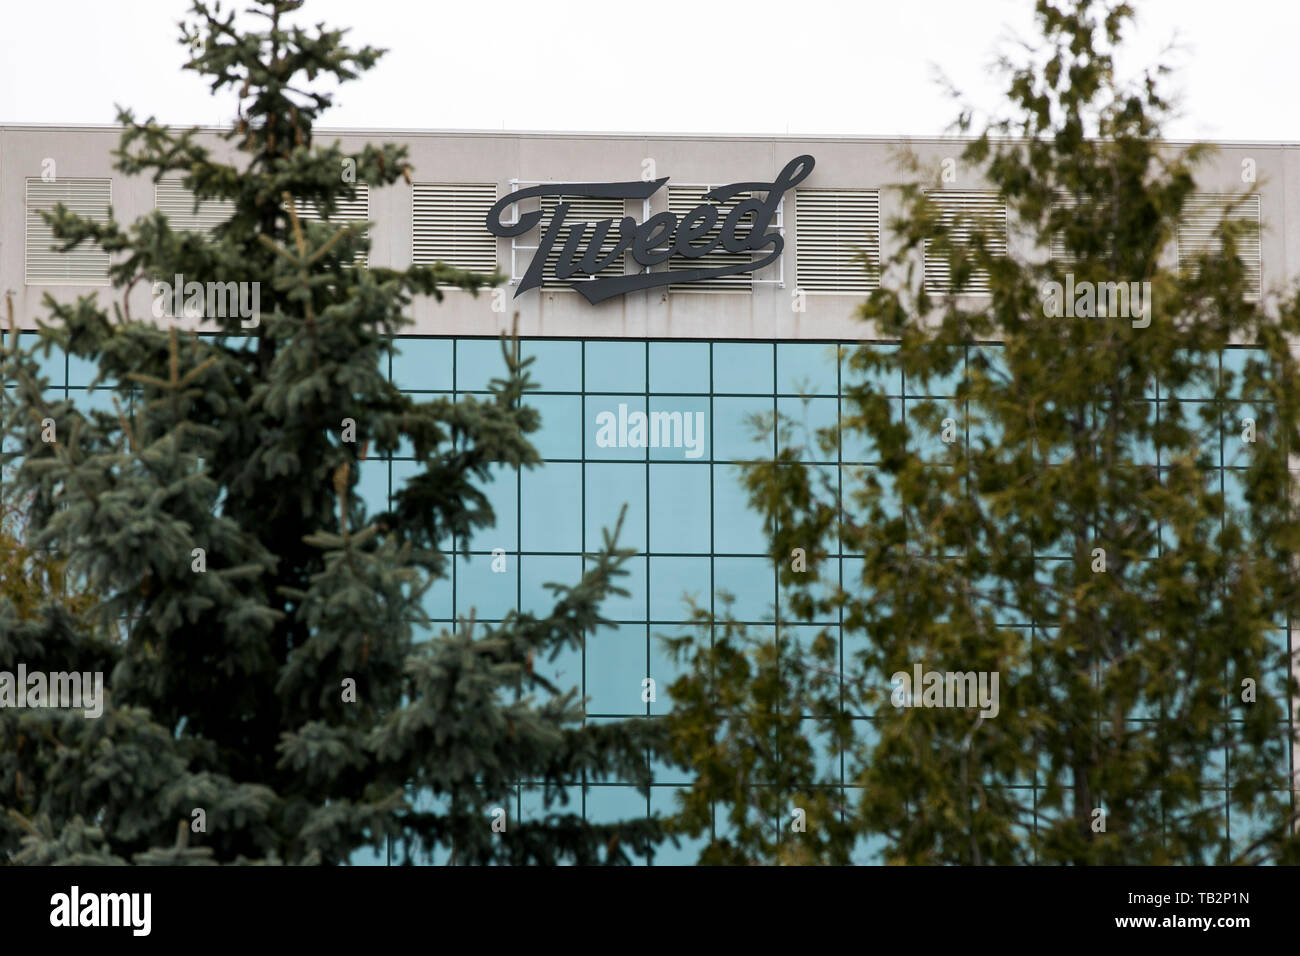 A Tweed logo sign outside of a facility occupied by Canopy Growth Corporation, Trading under the name 'Tweed' in Ottawa, Ontario, Canada, on April 20, Stock Photo